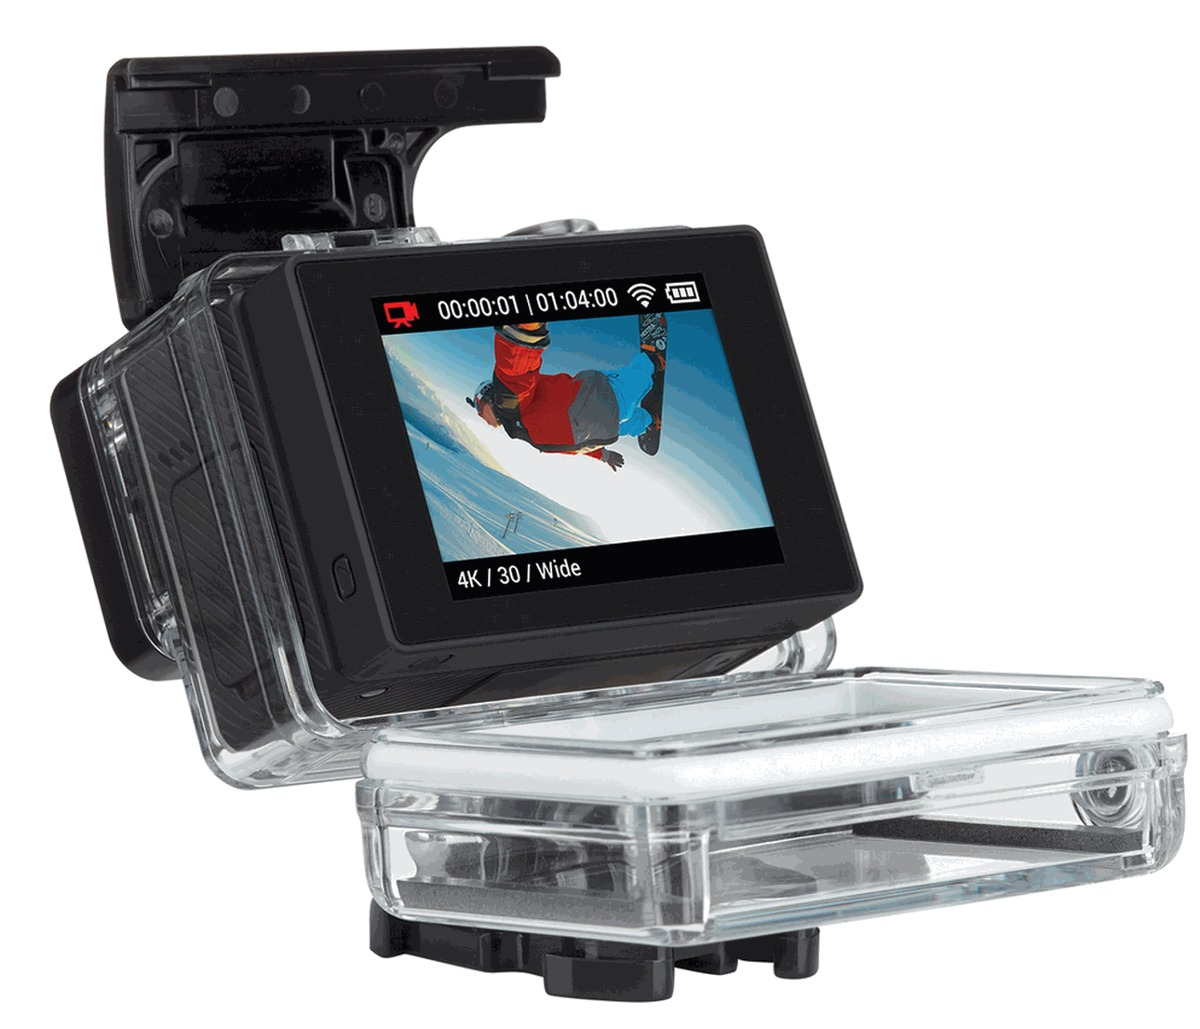 gopro hero 4 black edition tela lcd 64 gb go pro hero4. Black Bedroom Furniture Sets. Home Design Ideas